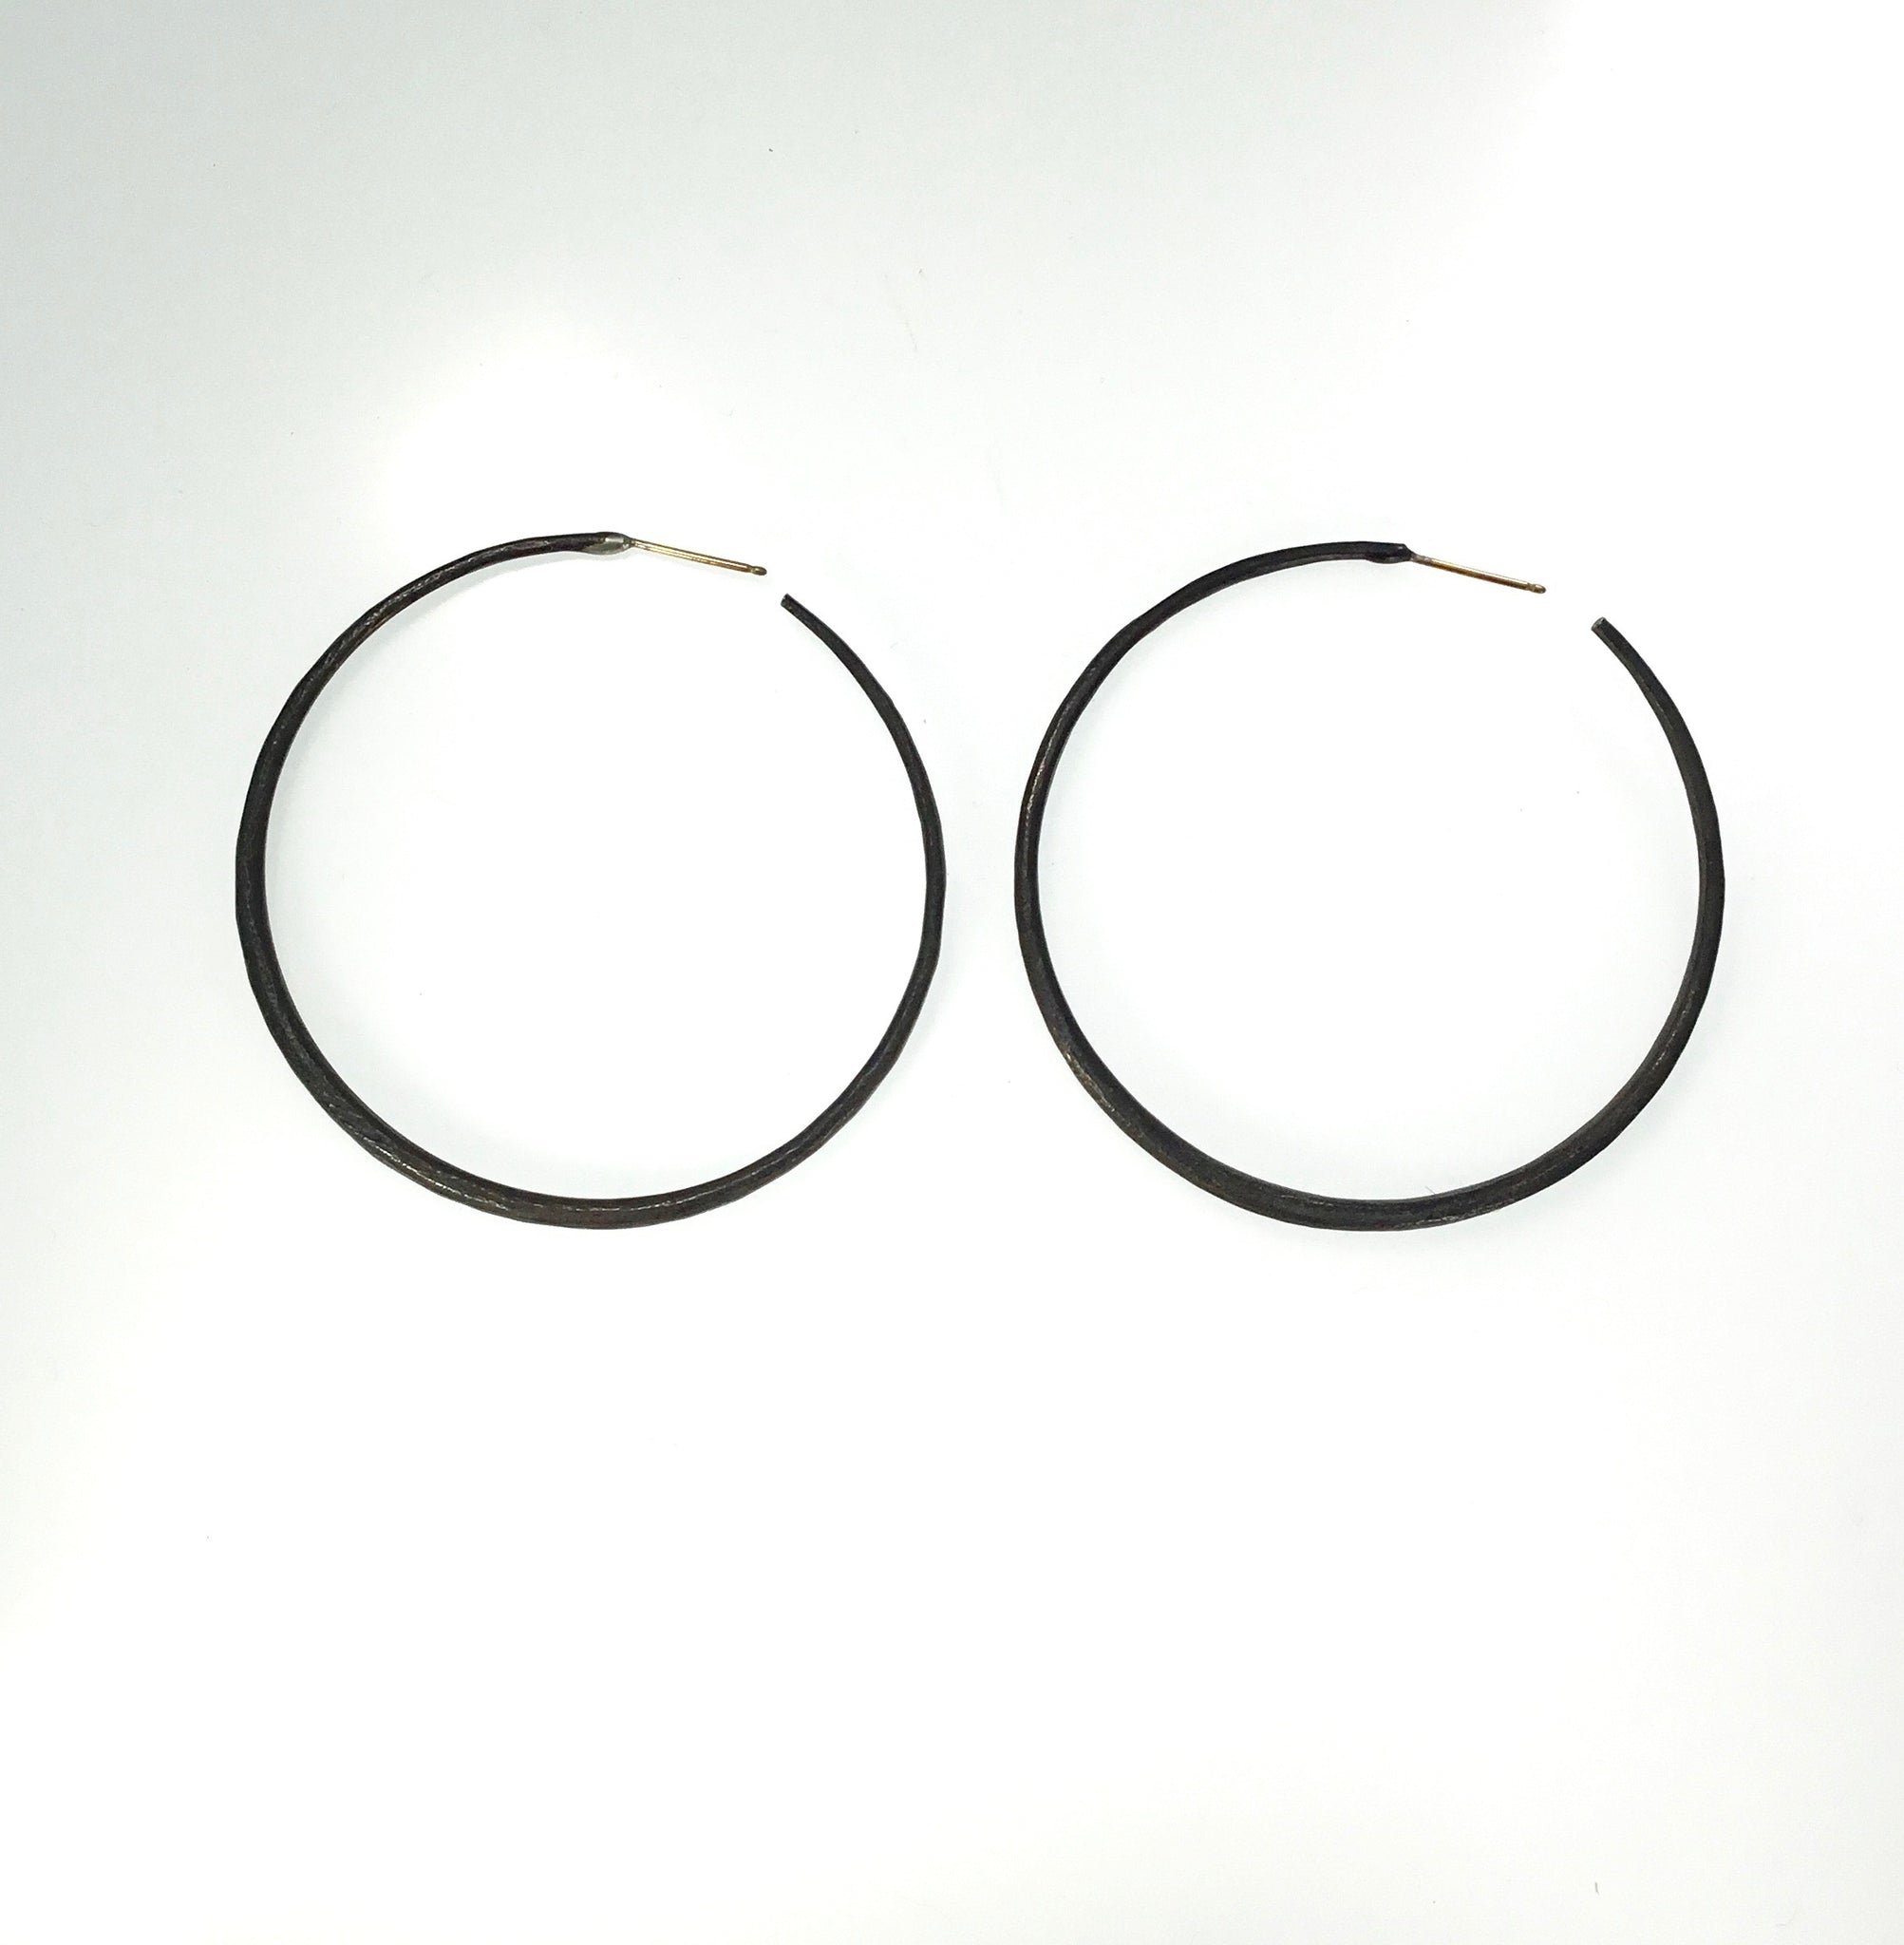 John Iversen Oxidized Silver Hoops (SOLD)